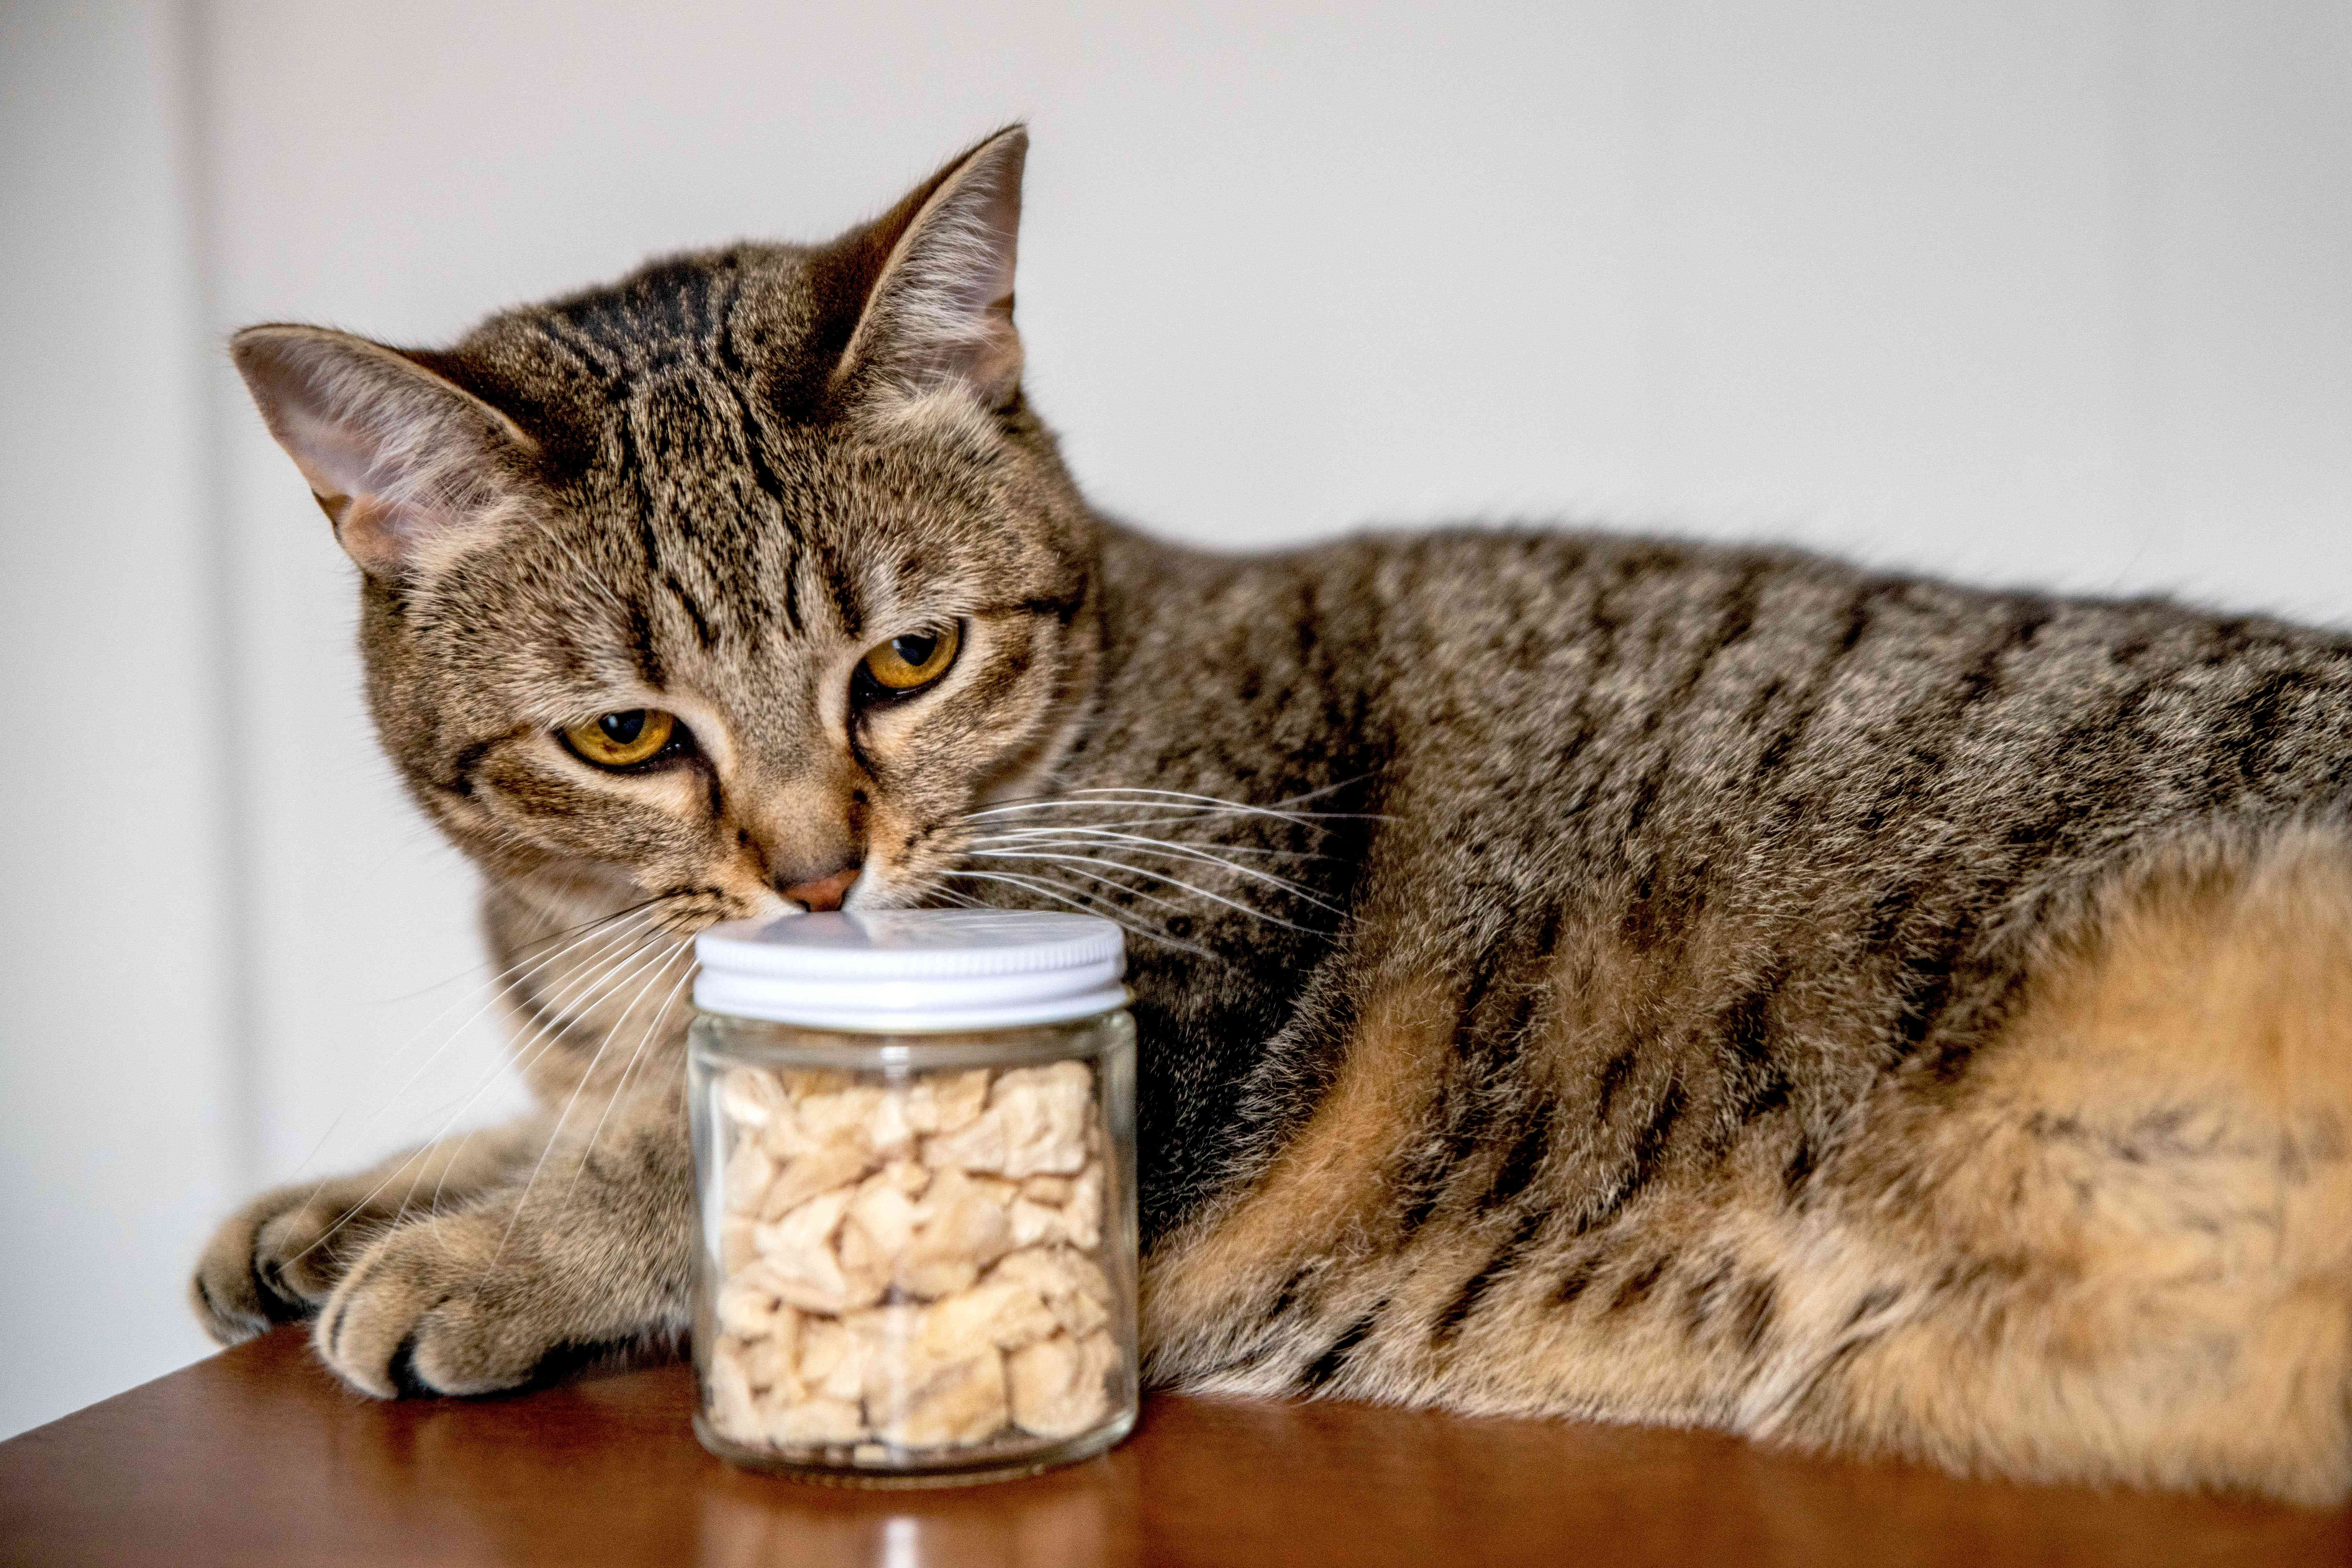 Brown cat sniffing glass container with treats